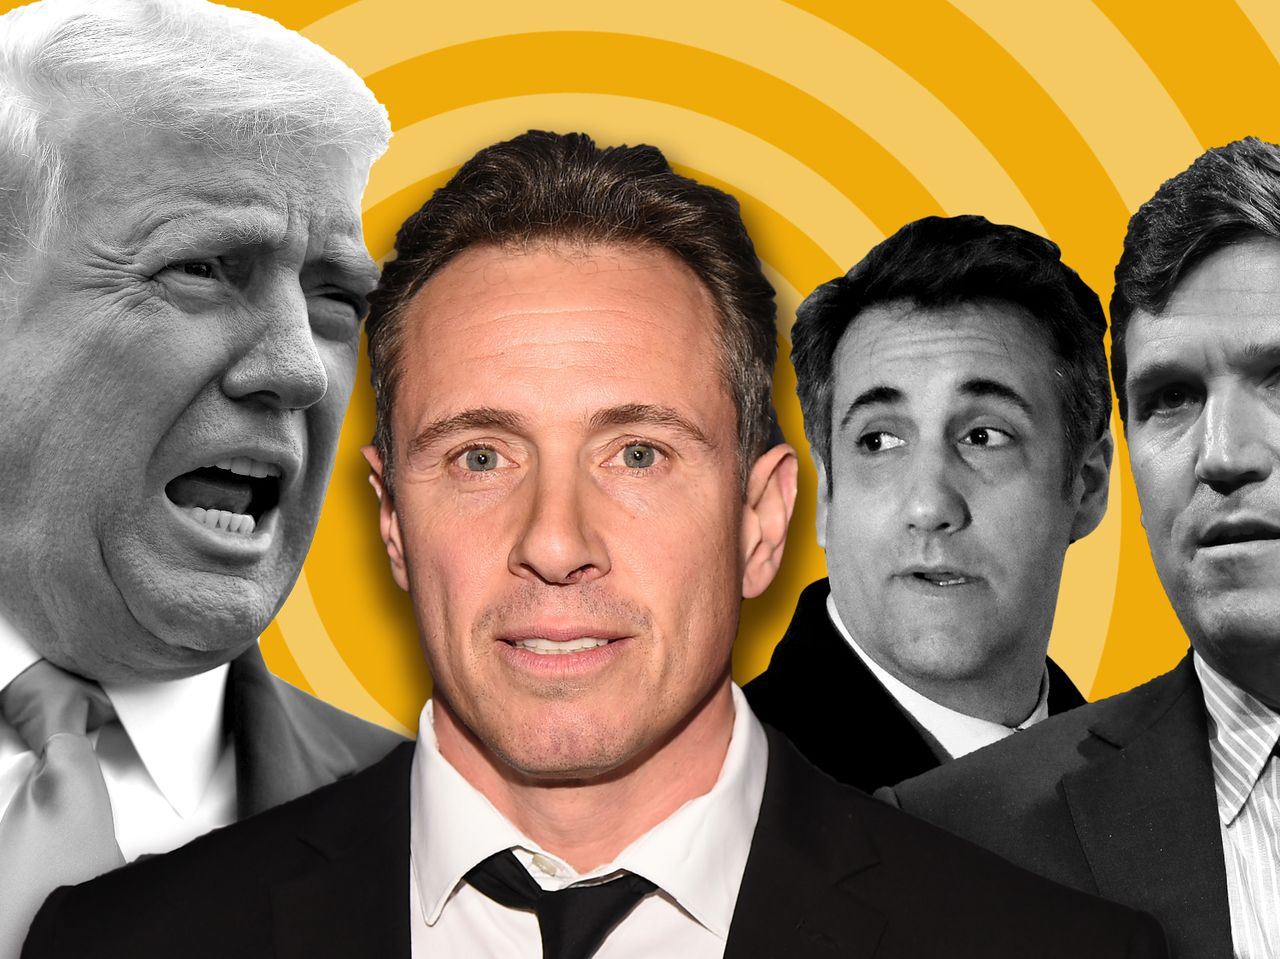 Trump Calls On Cnn To Fire Host Chris Cuomo Following Unsubstantiated Claim By Fox S Tucker Carlson Marketwatch